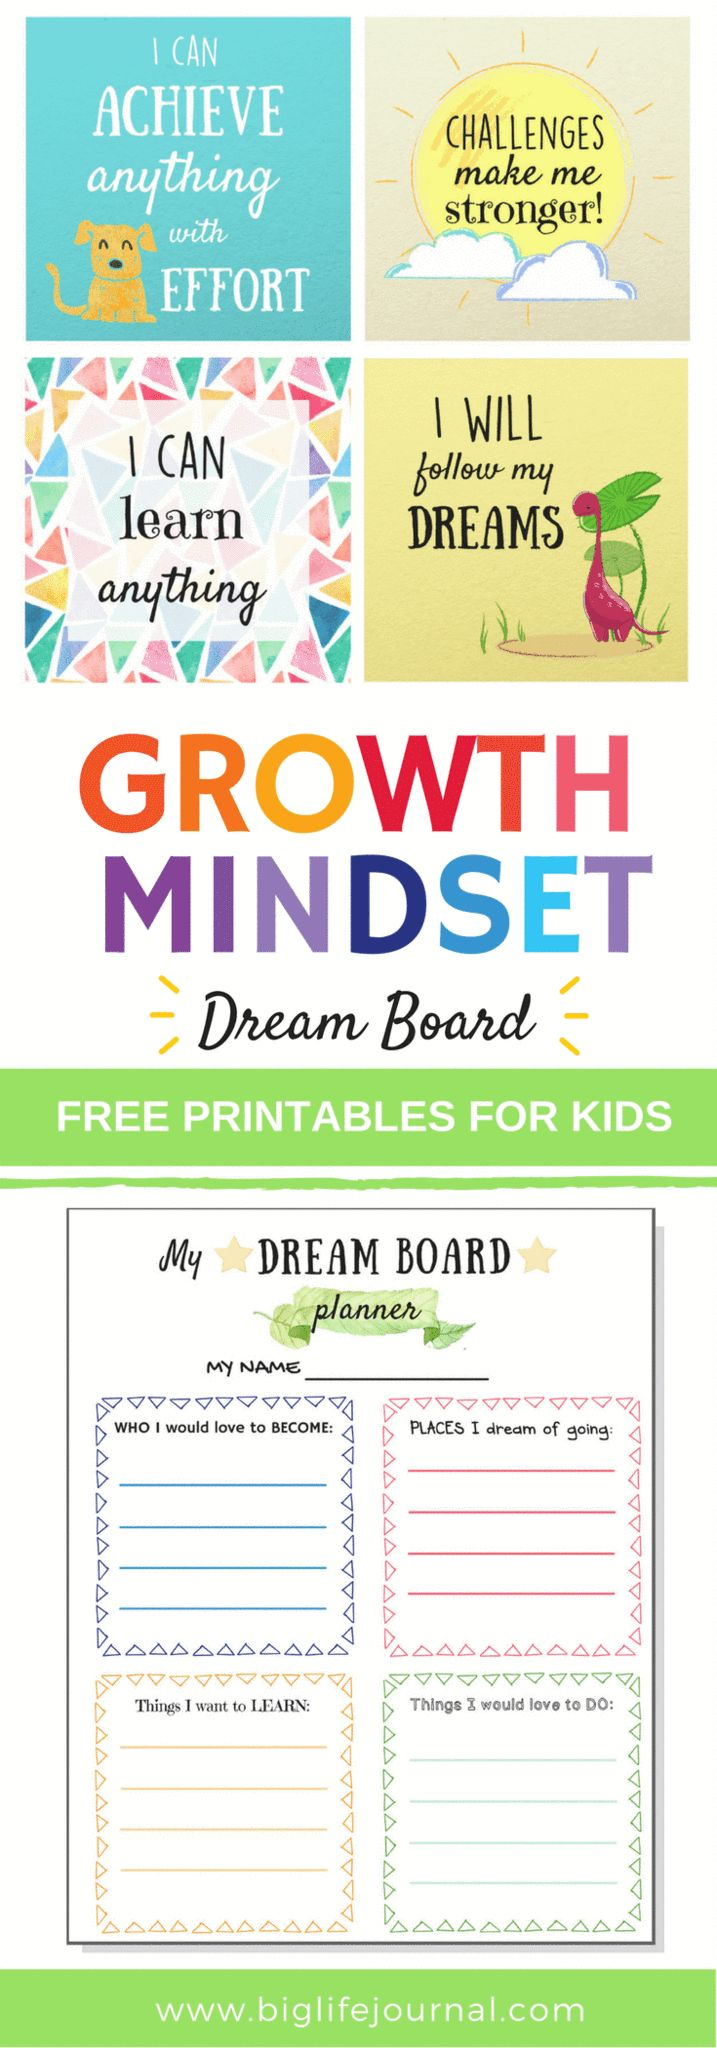 Free growth mindset printables for kids to help them create their dream (vision) boards.